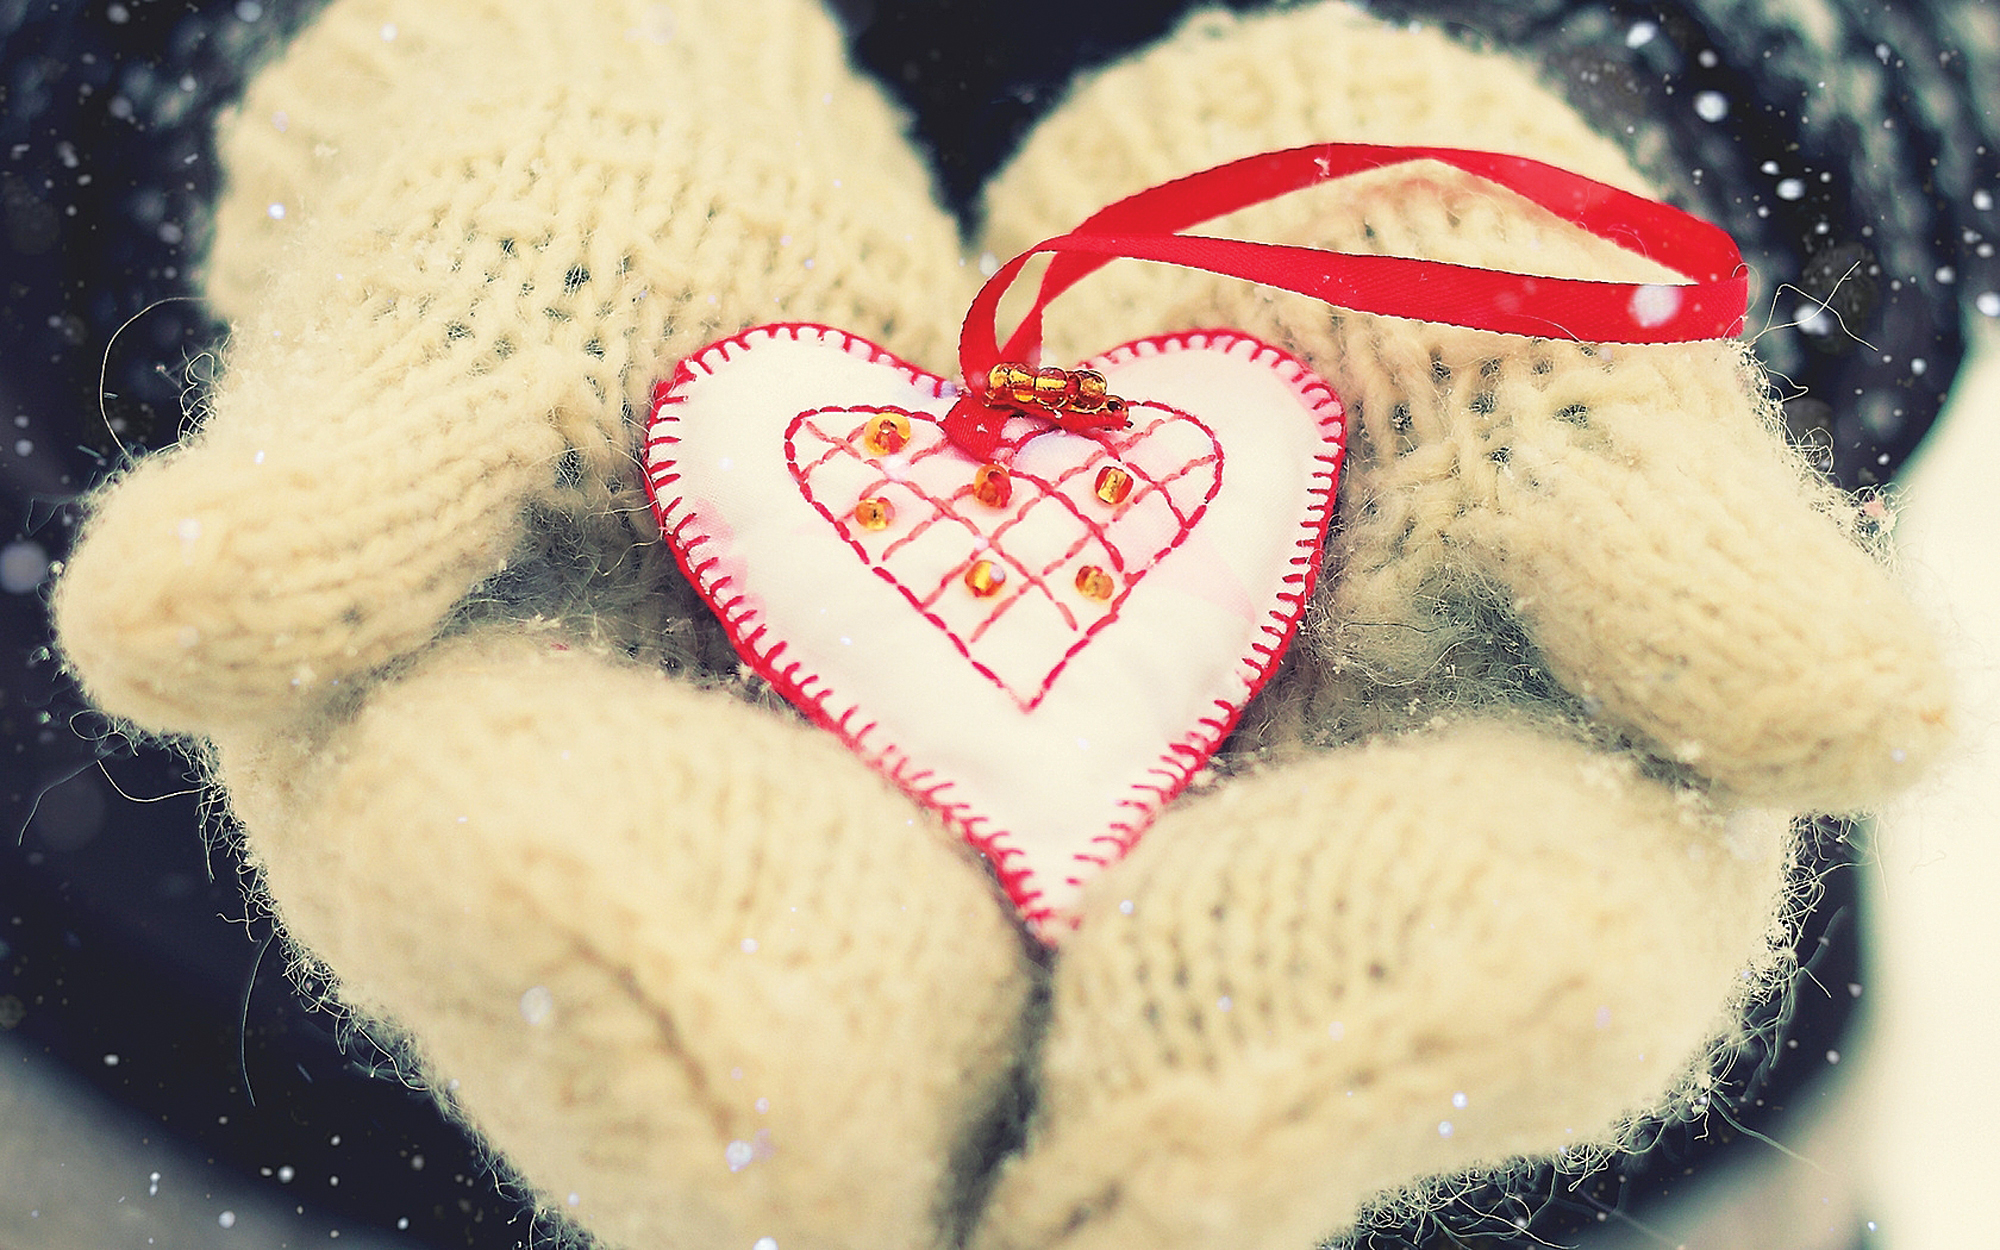 Give gLOVEs: NOEL Community seeks gloves, hats, socks and blankets to aid less fortunate during chilly winter months